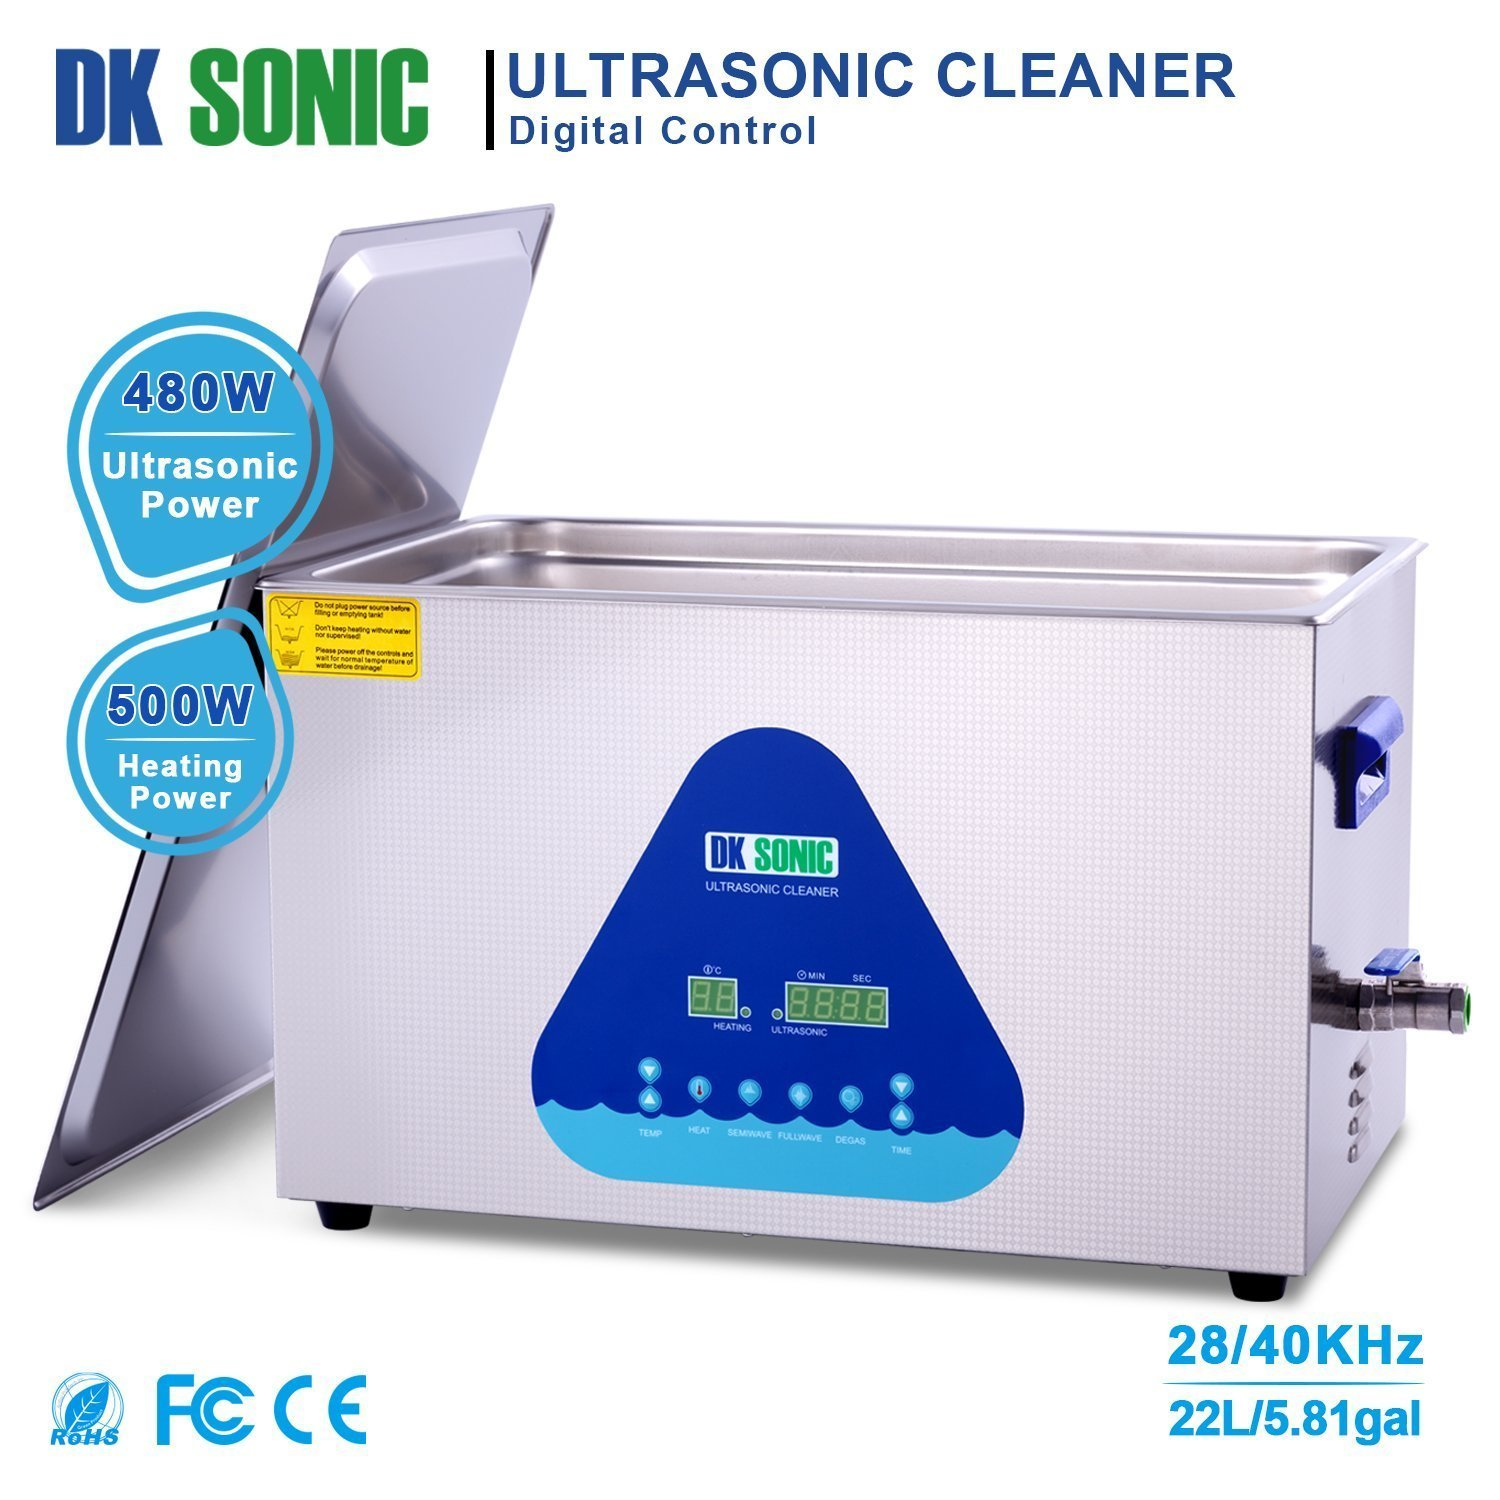 Lab Digital Ultrasonic Carburetor Cleaner Heated - DK SONIC 22L 480W Ultrasonic Gun Cleaner for Parts Jewelry Brass Eyeglass Ring Fuel Injector Glasses Record Diamond Circuit Board 28/40KHz by DK SONIC (Image #2)